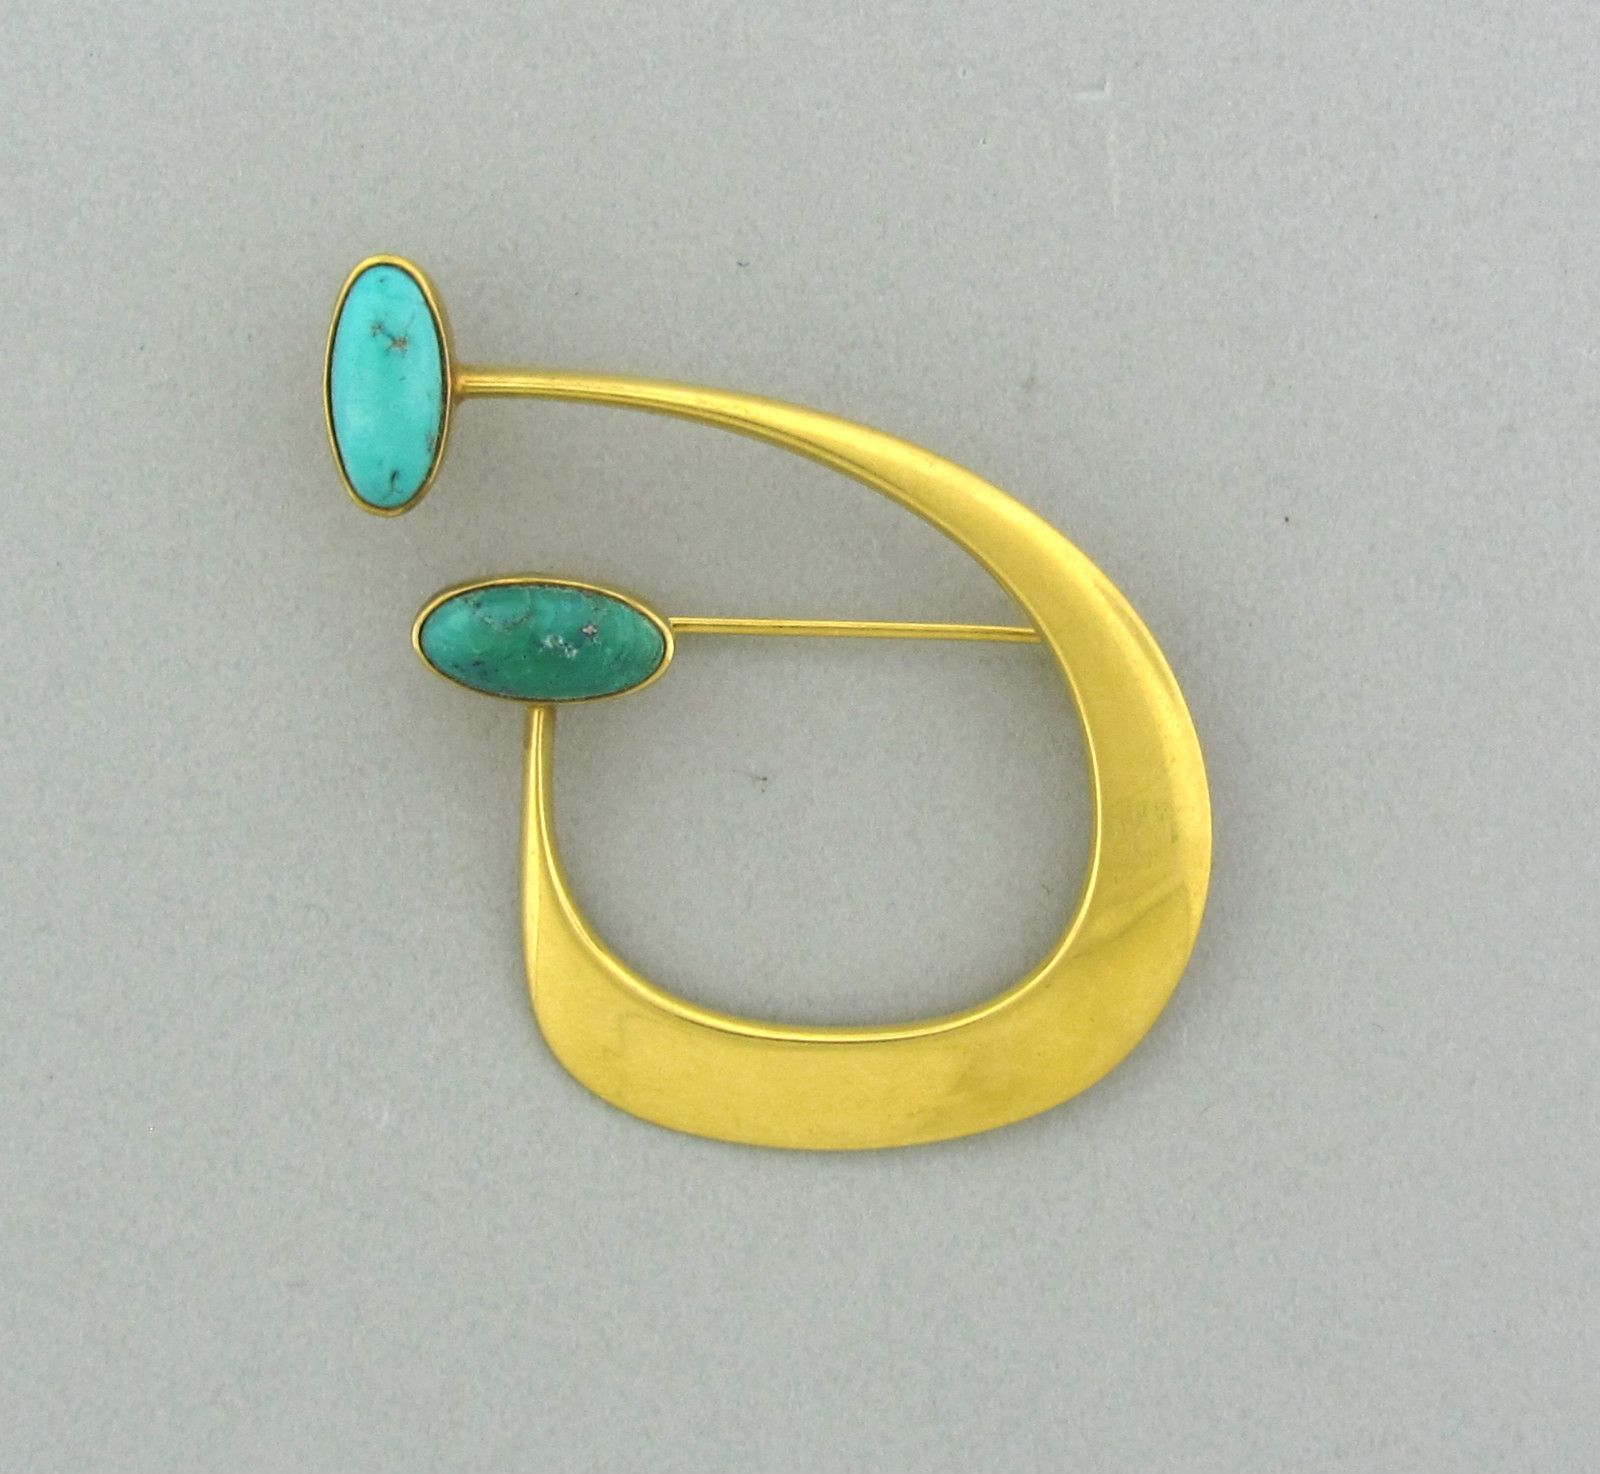 Bent Gabrielsen Denmark gold and turquoise brooch 1960s